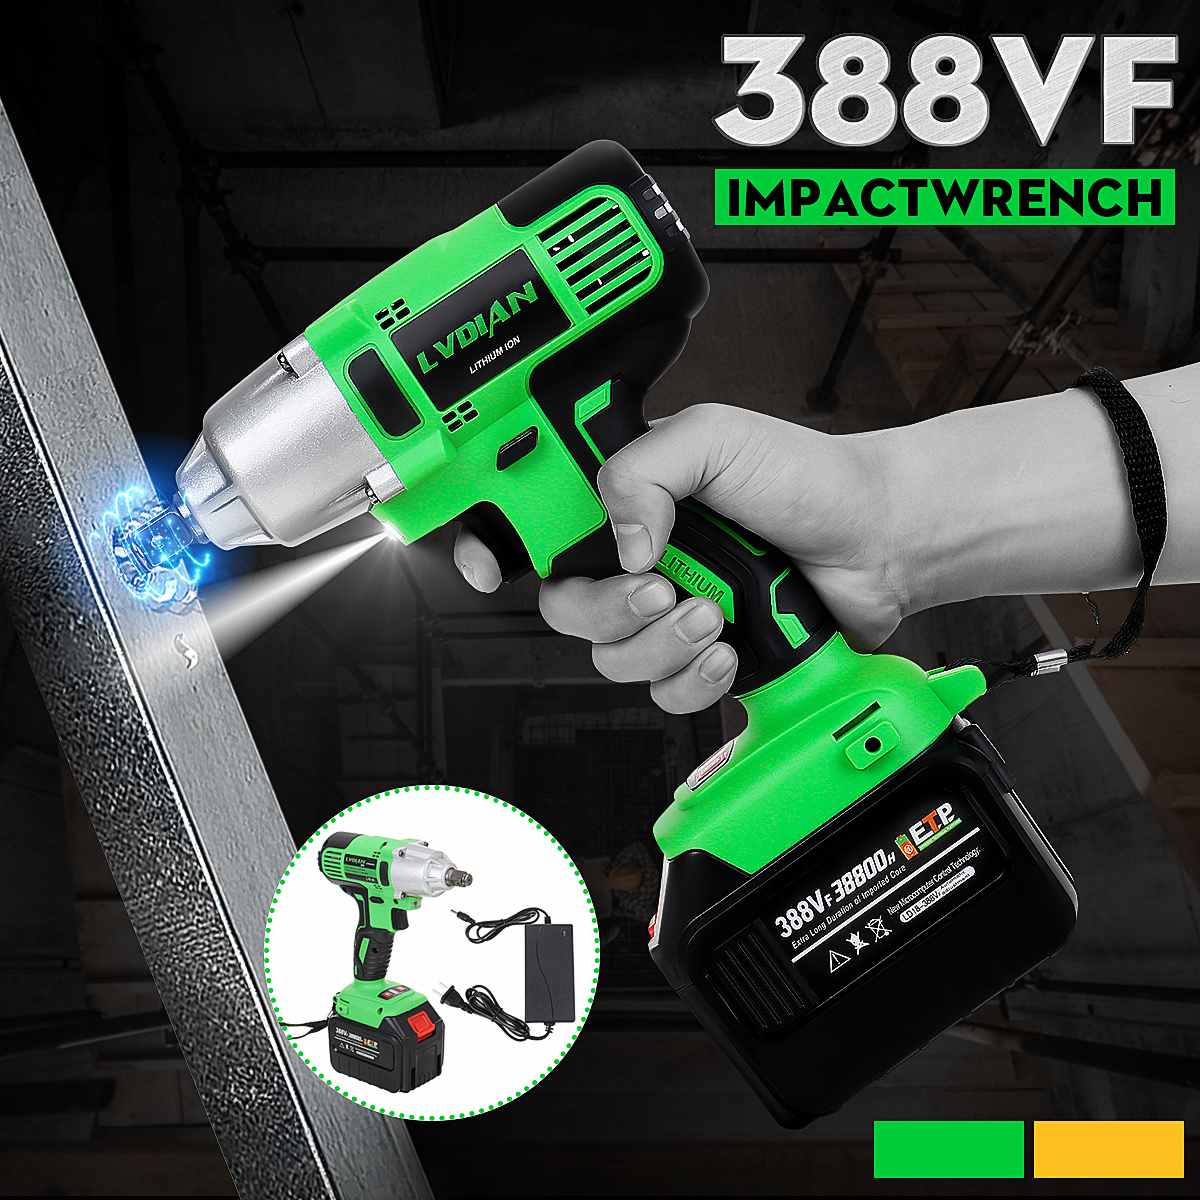 388VF 300Nm 1/2 Electric Impact Wrench Brushless Impact Cordless Wrench Socket Wrench Power Tools Accessory 38800mah Battery|  - title=